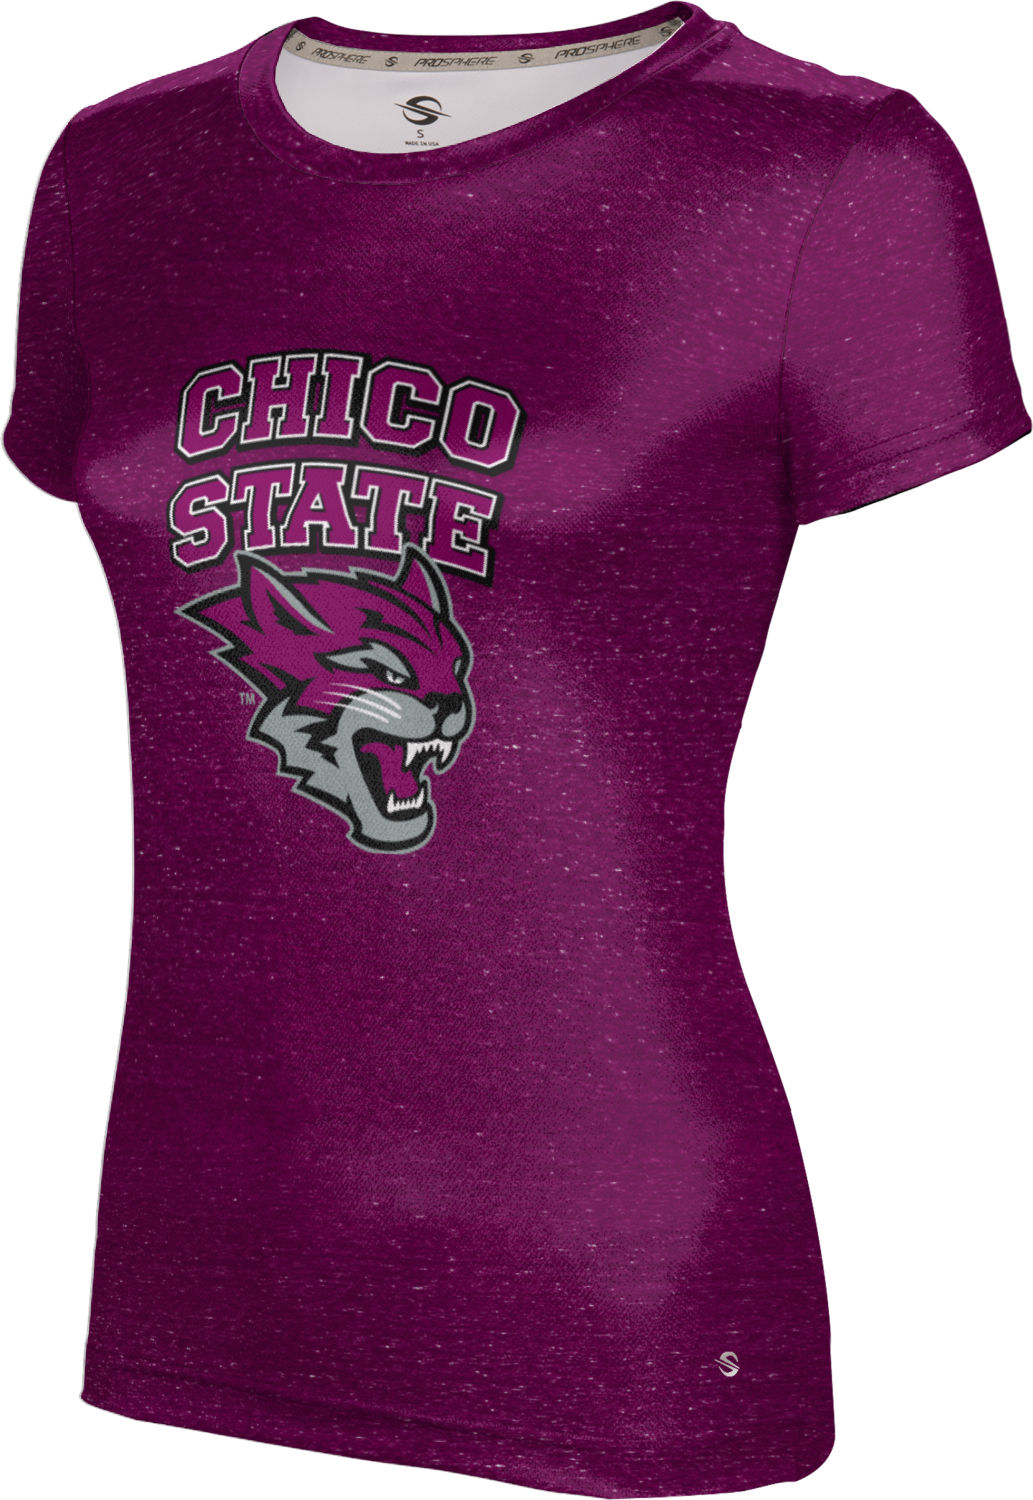 ProSphere Girls' California State University Chico Heather Tech Tee